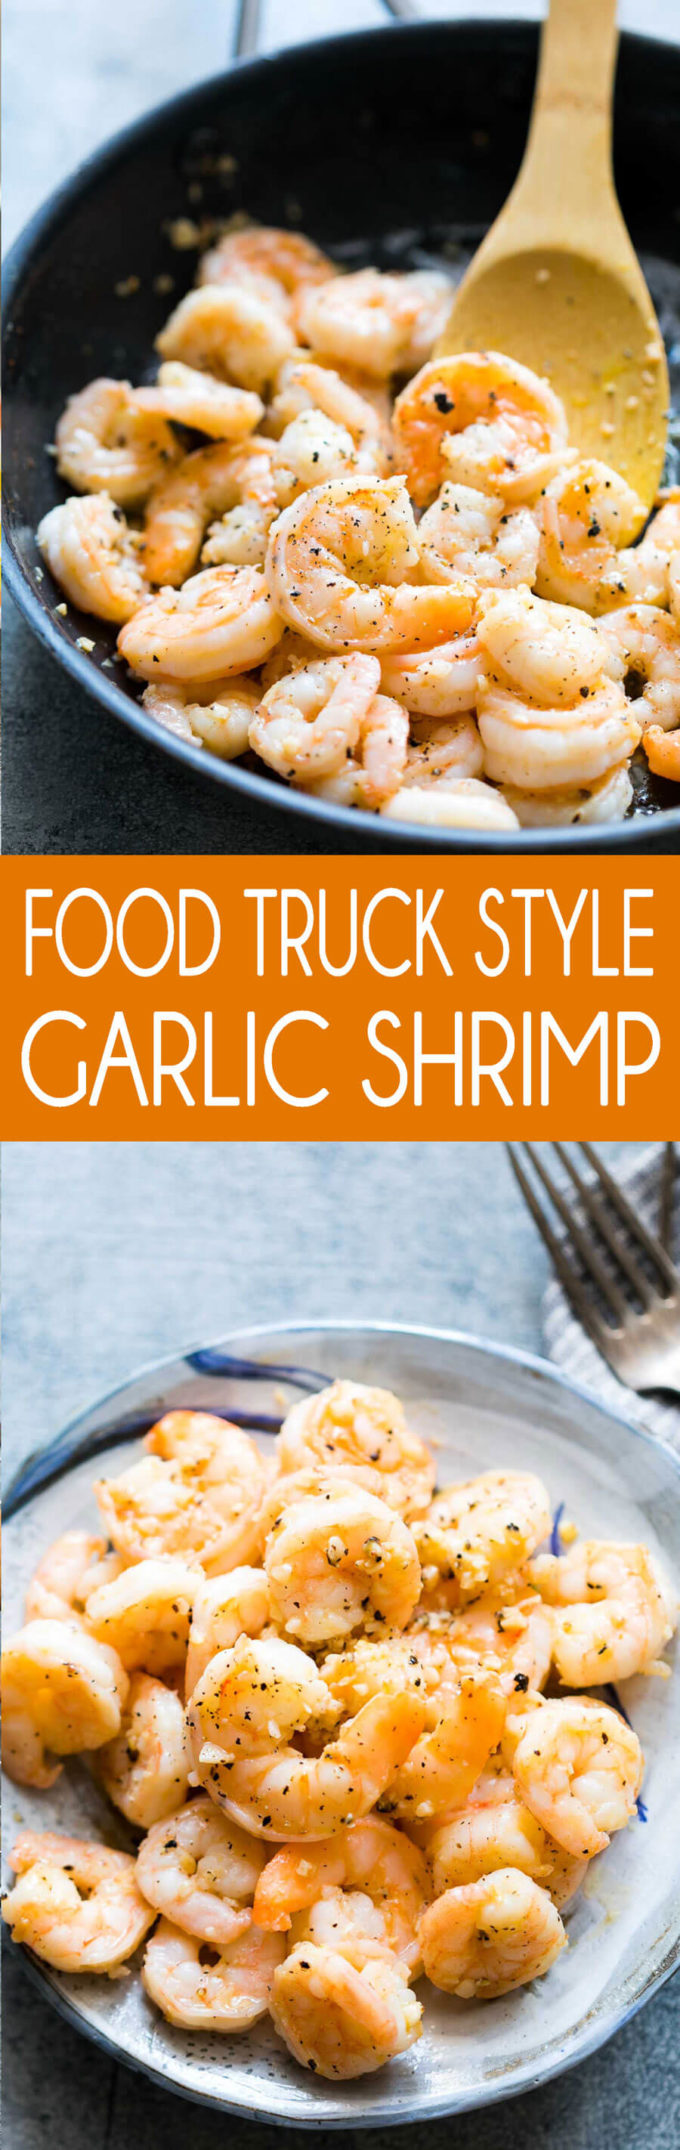 Food truck style garlic shrimp, big juicy shrimp sauted in garlic butter for the ultimate island meal